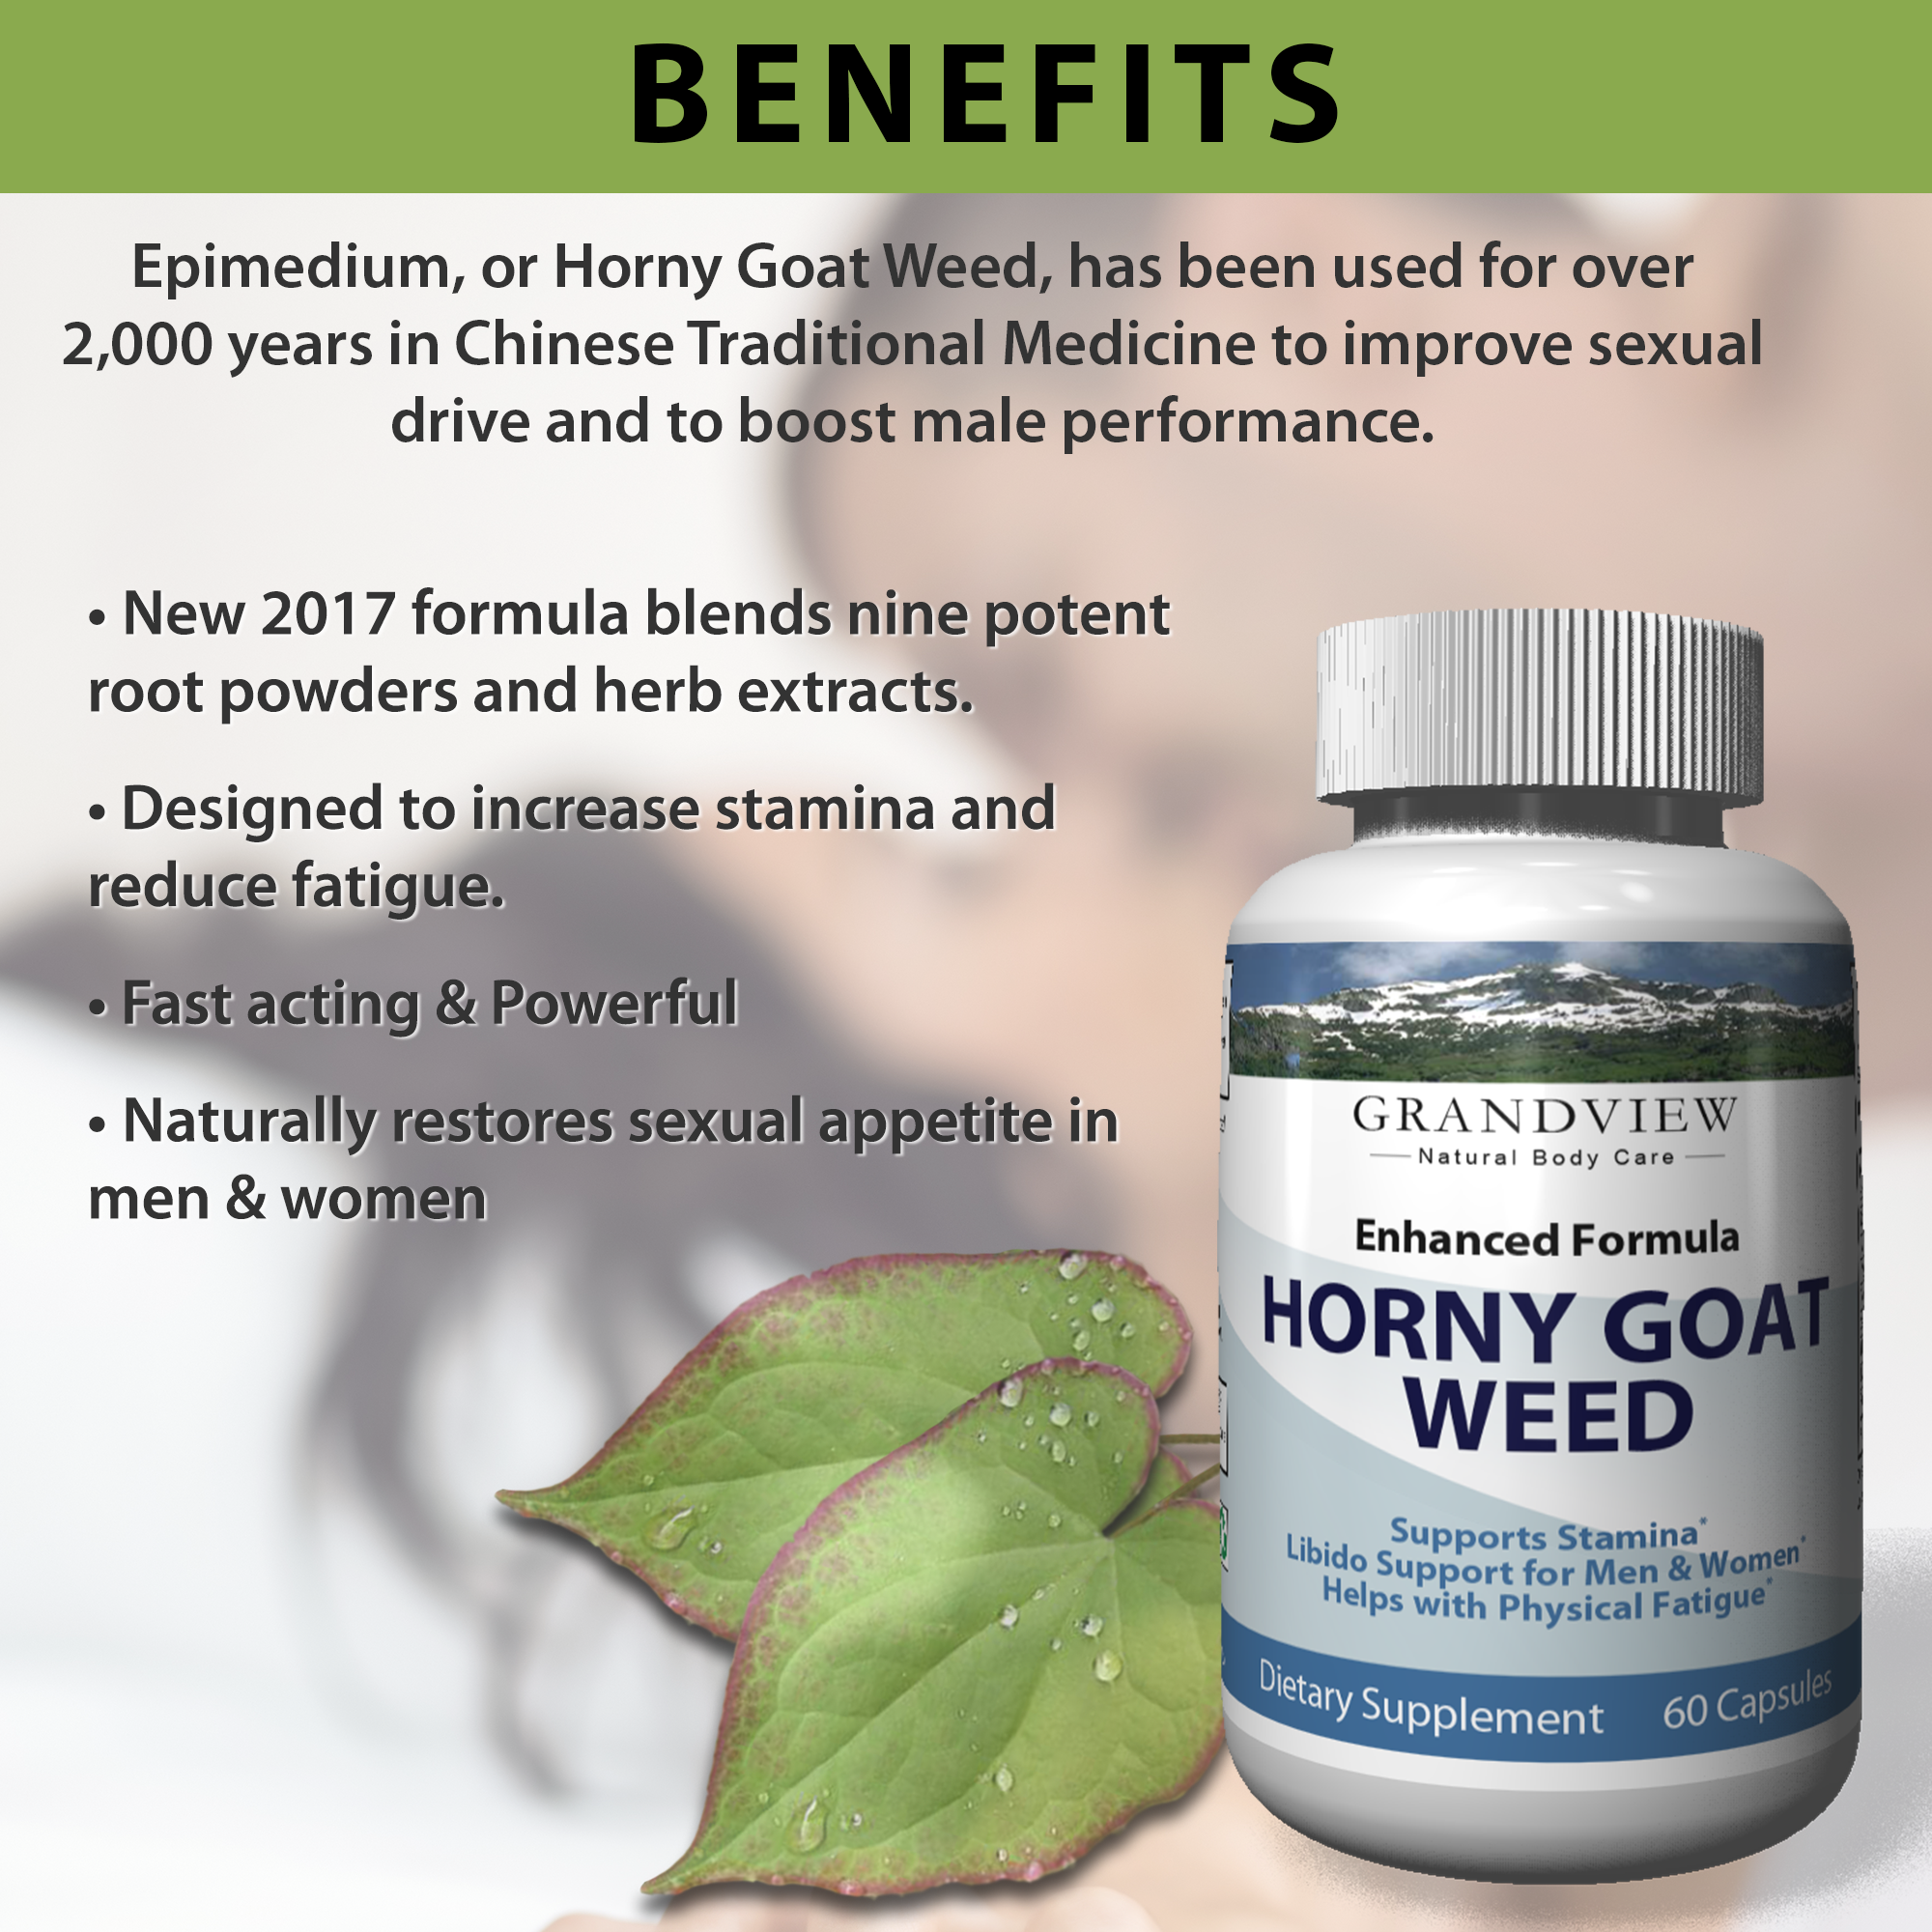 RETIRE Horny Goat Weed Best Performance & Natural Boost